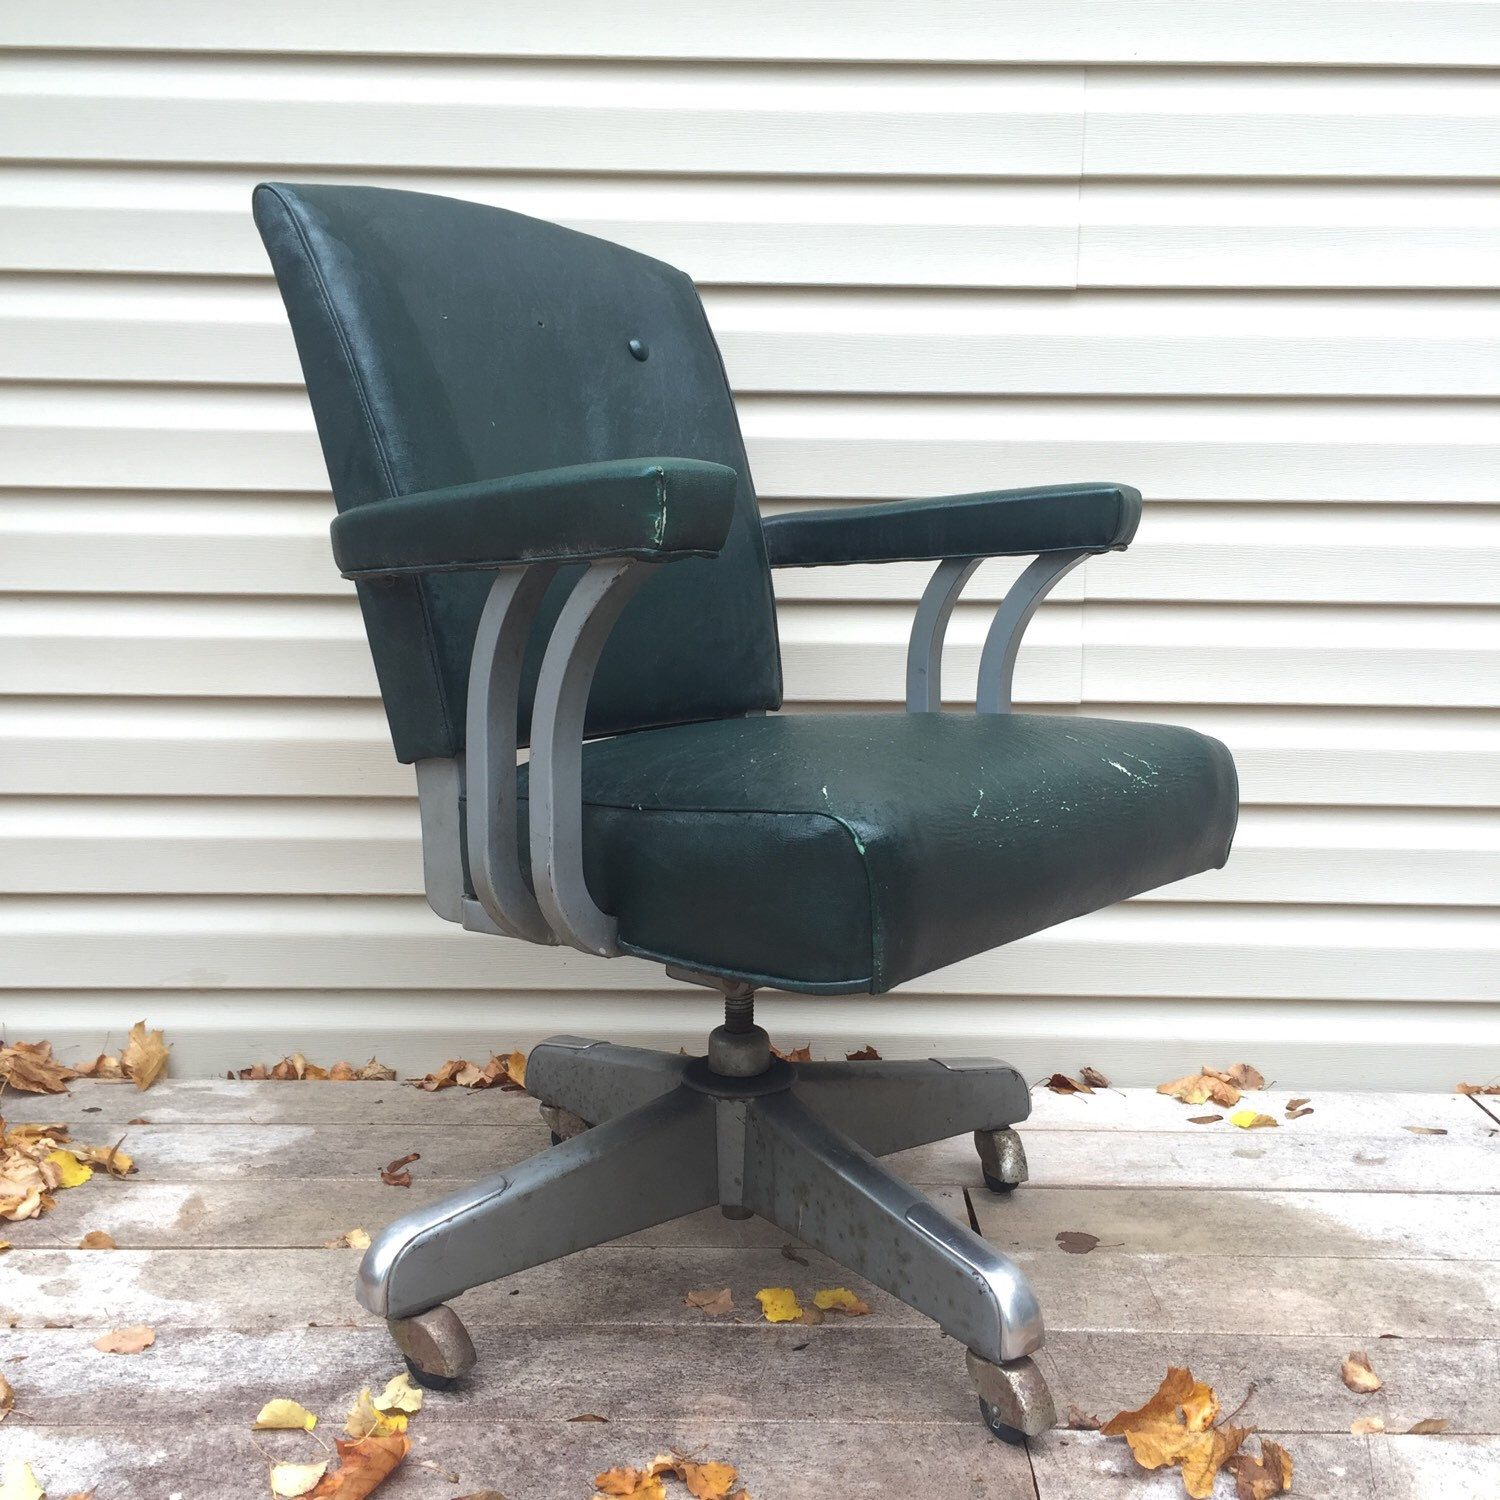 Atomic Age Desk Chair By Steelcase Asburyparkvintage On Etsy Https Www